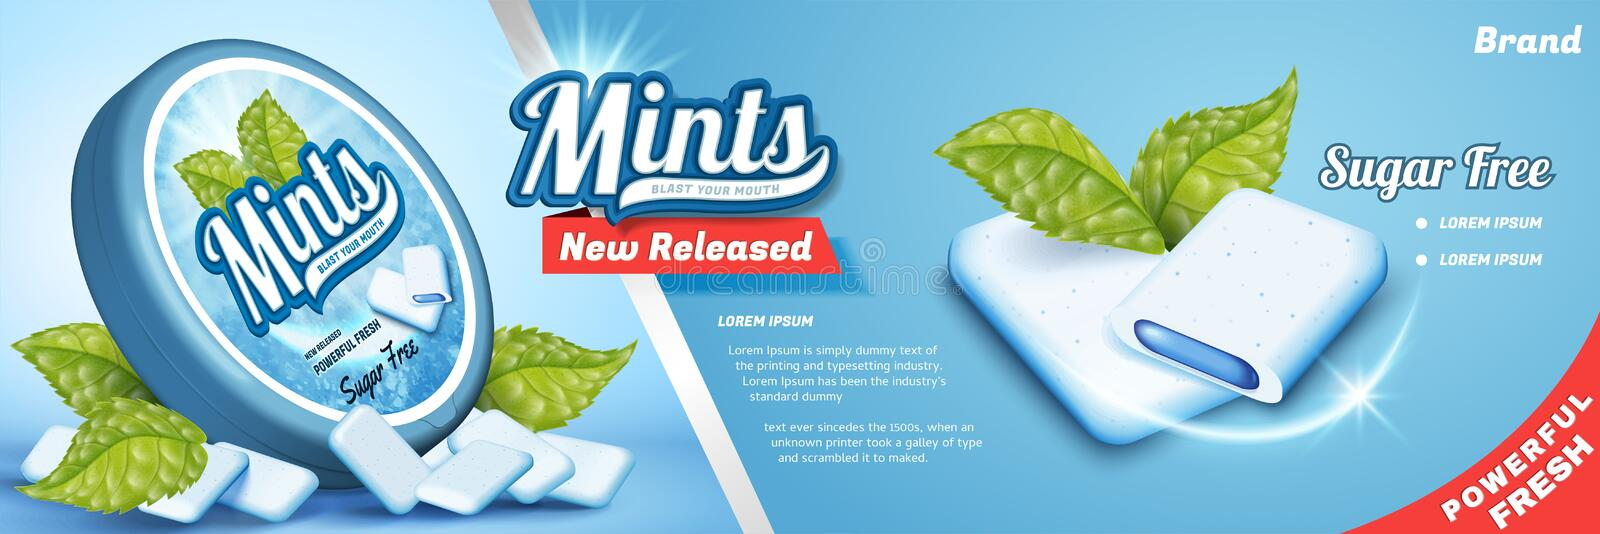 Mints gum ads. Freshen breath product with mint leaves isolated on blue background, gum with cool fillings royalty free illustration